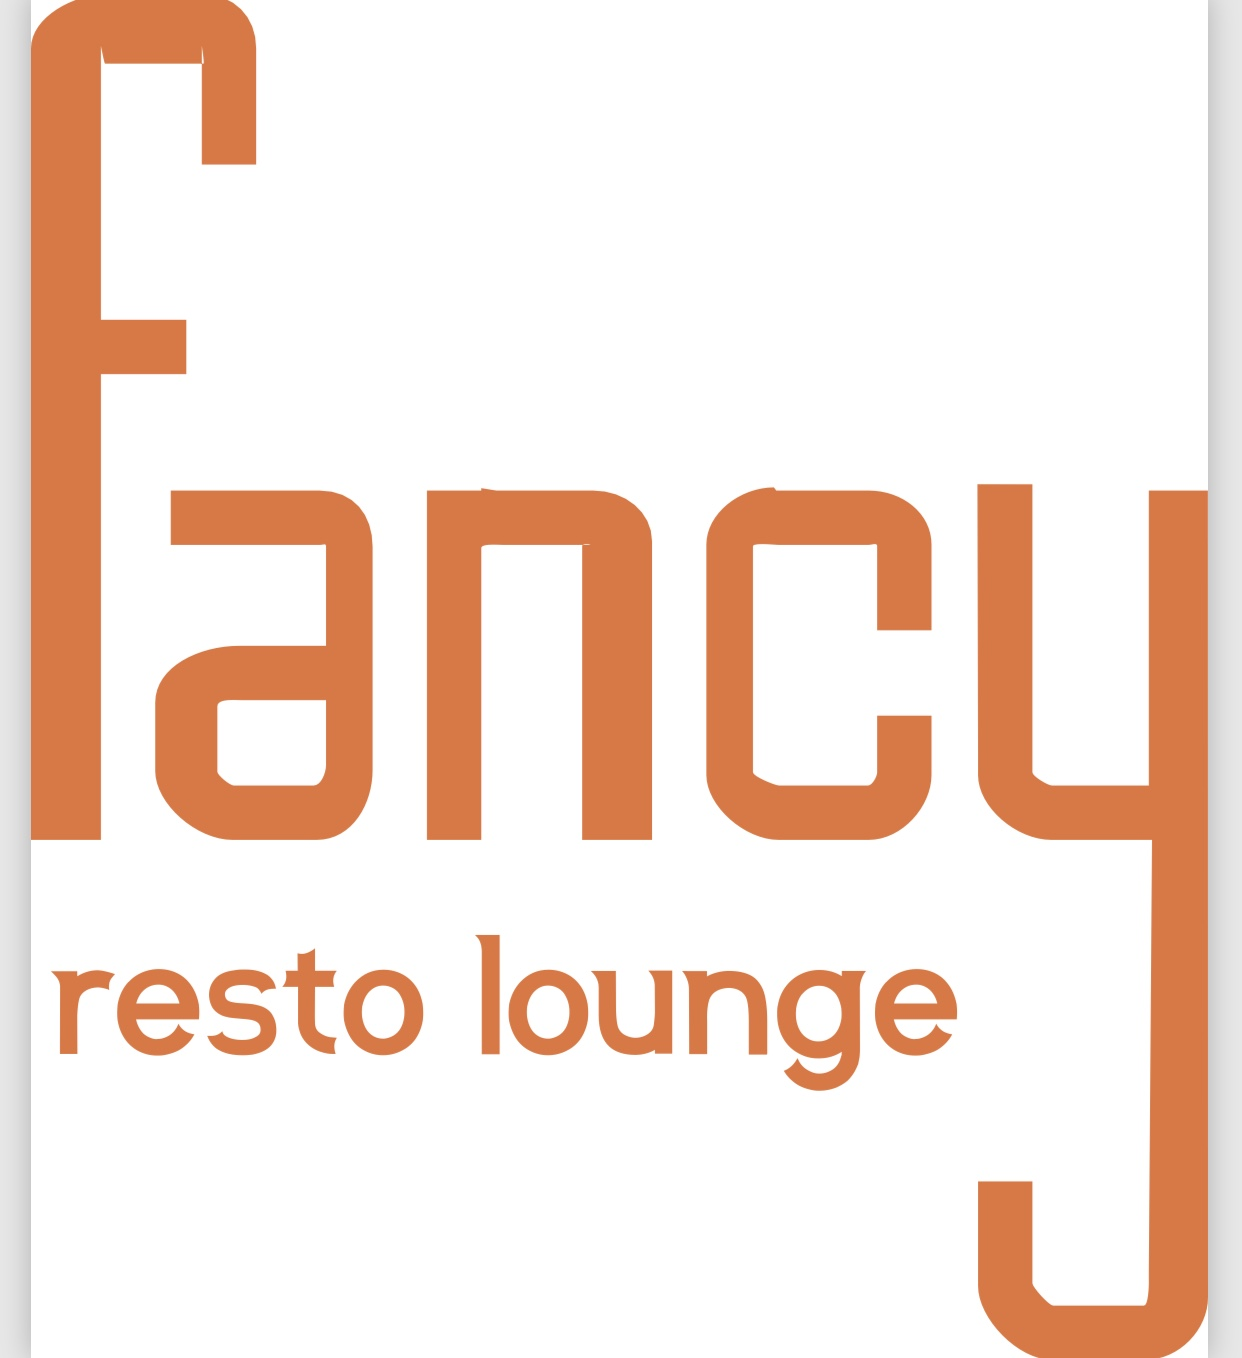 Fancy Resto Lounge